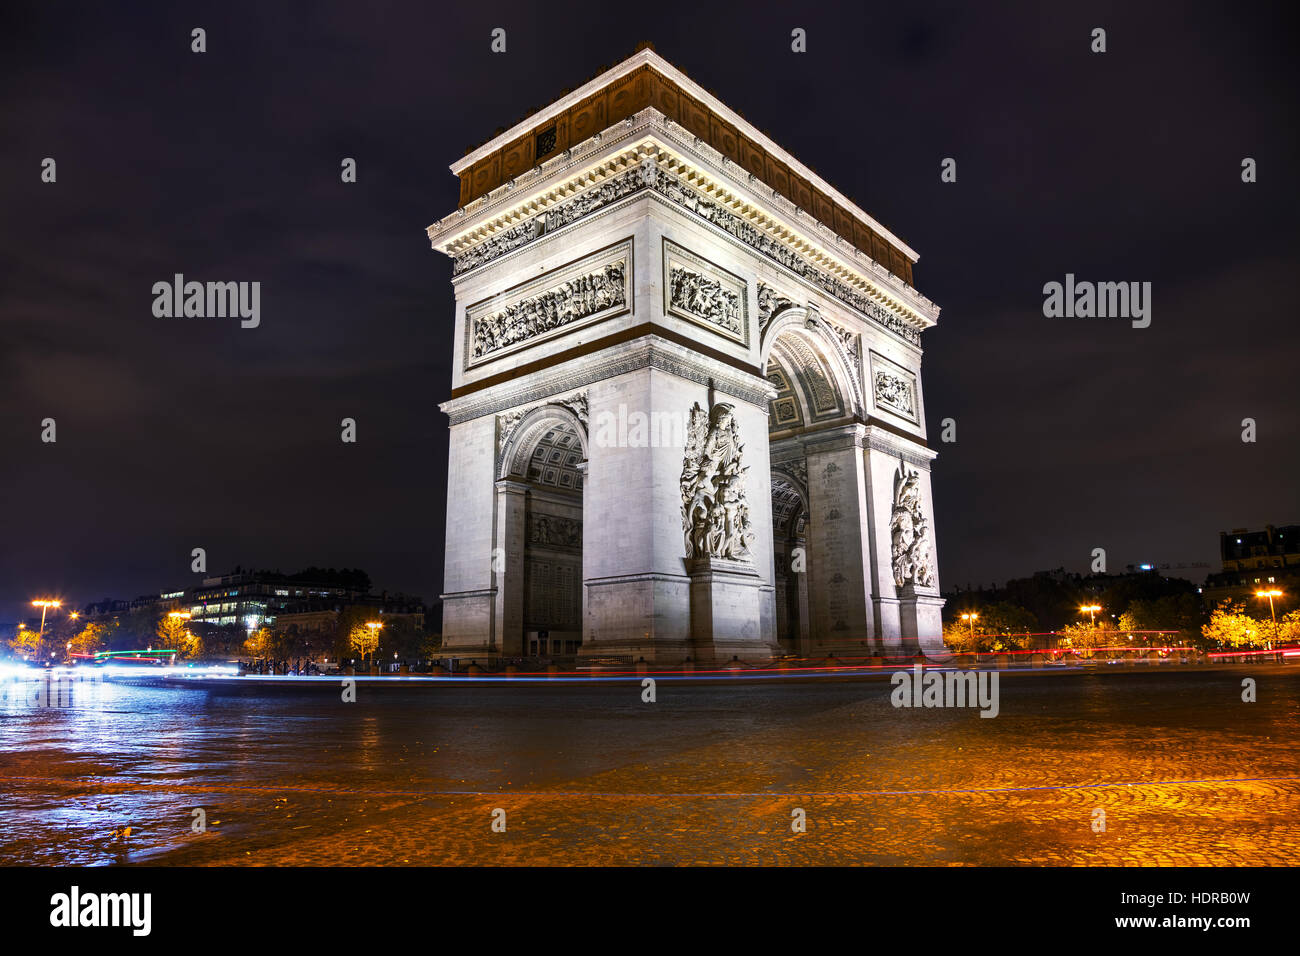 The Triumphal Arch (Arc de Triomphe) in Paris, France at night - Stock Image